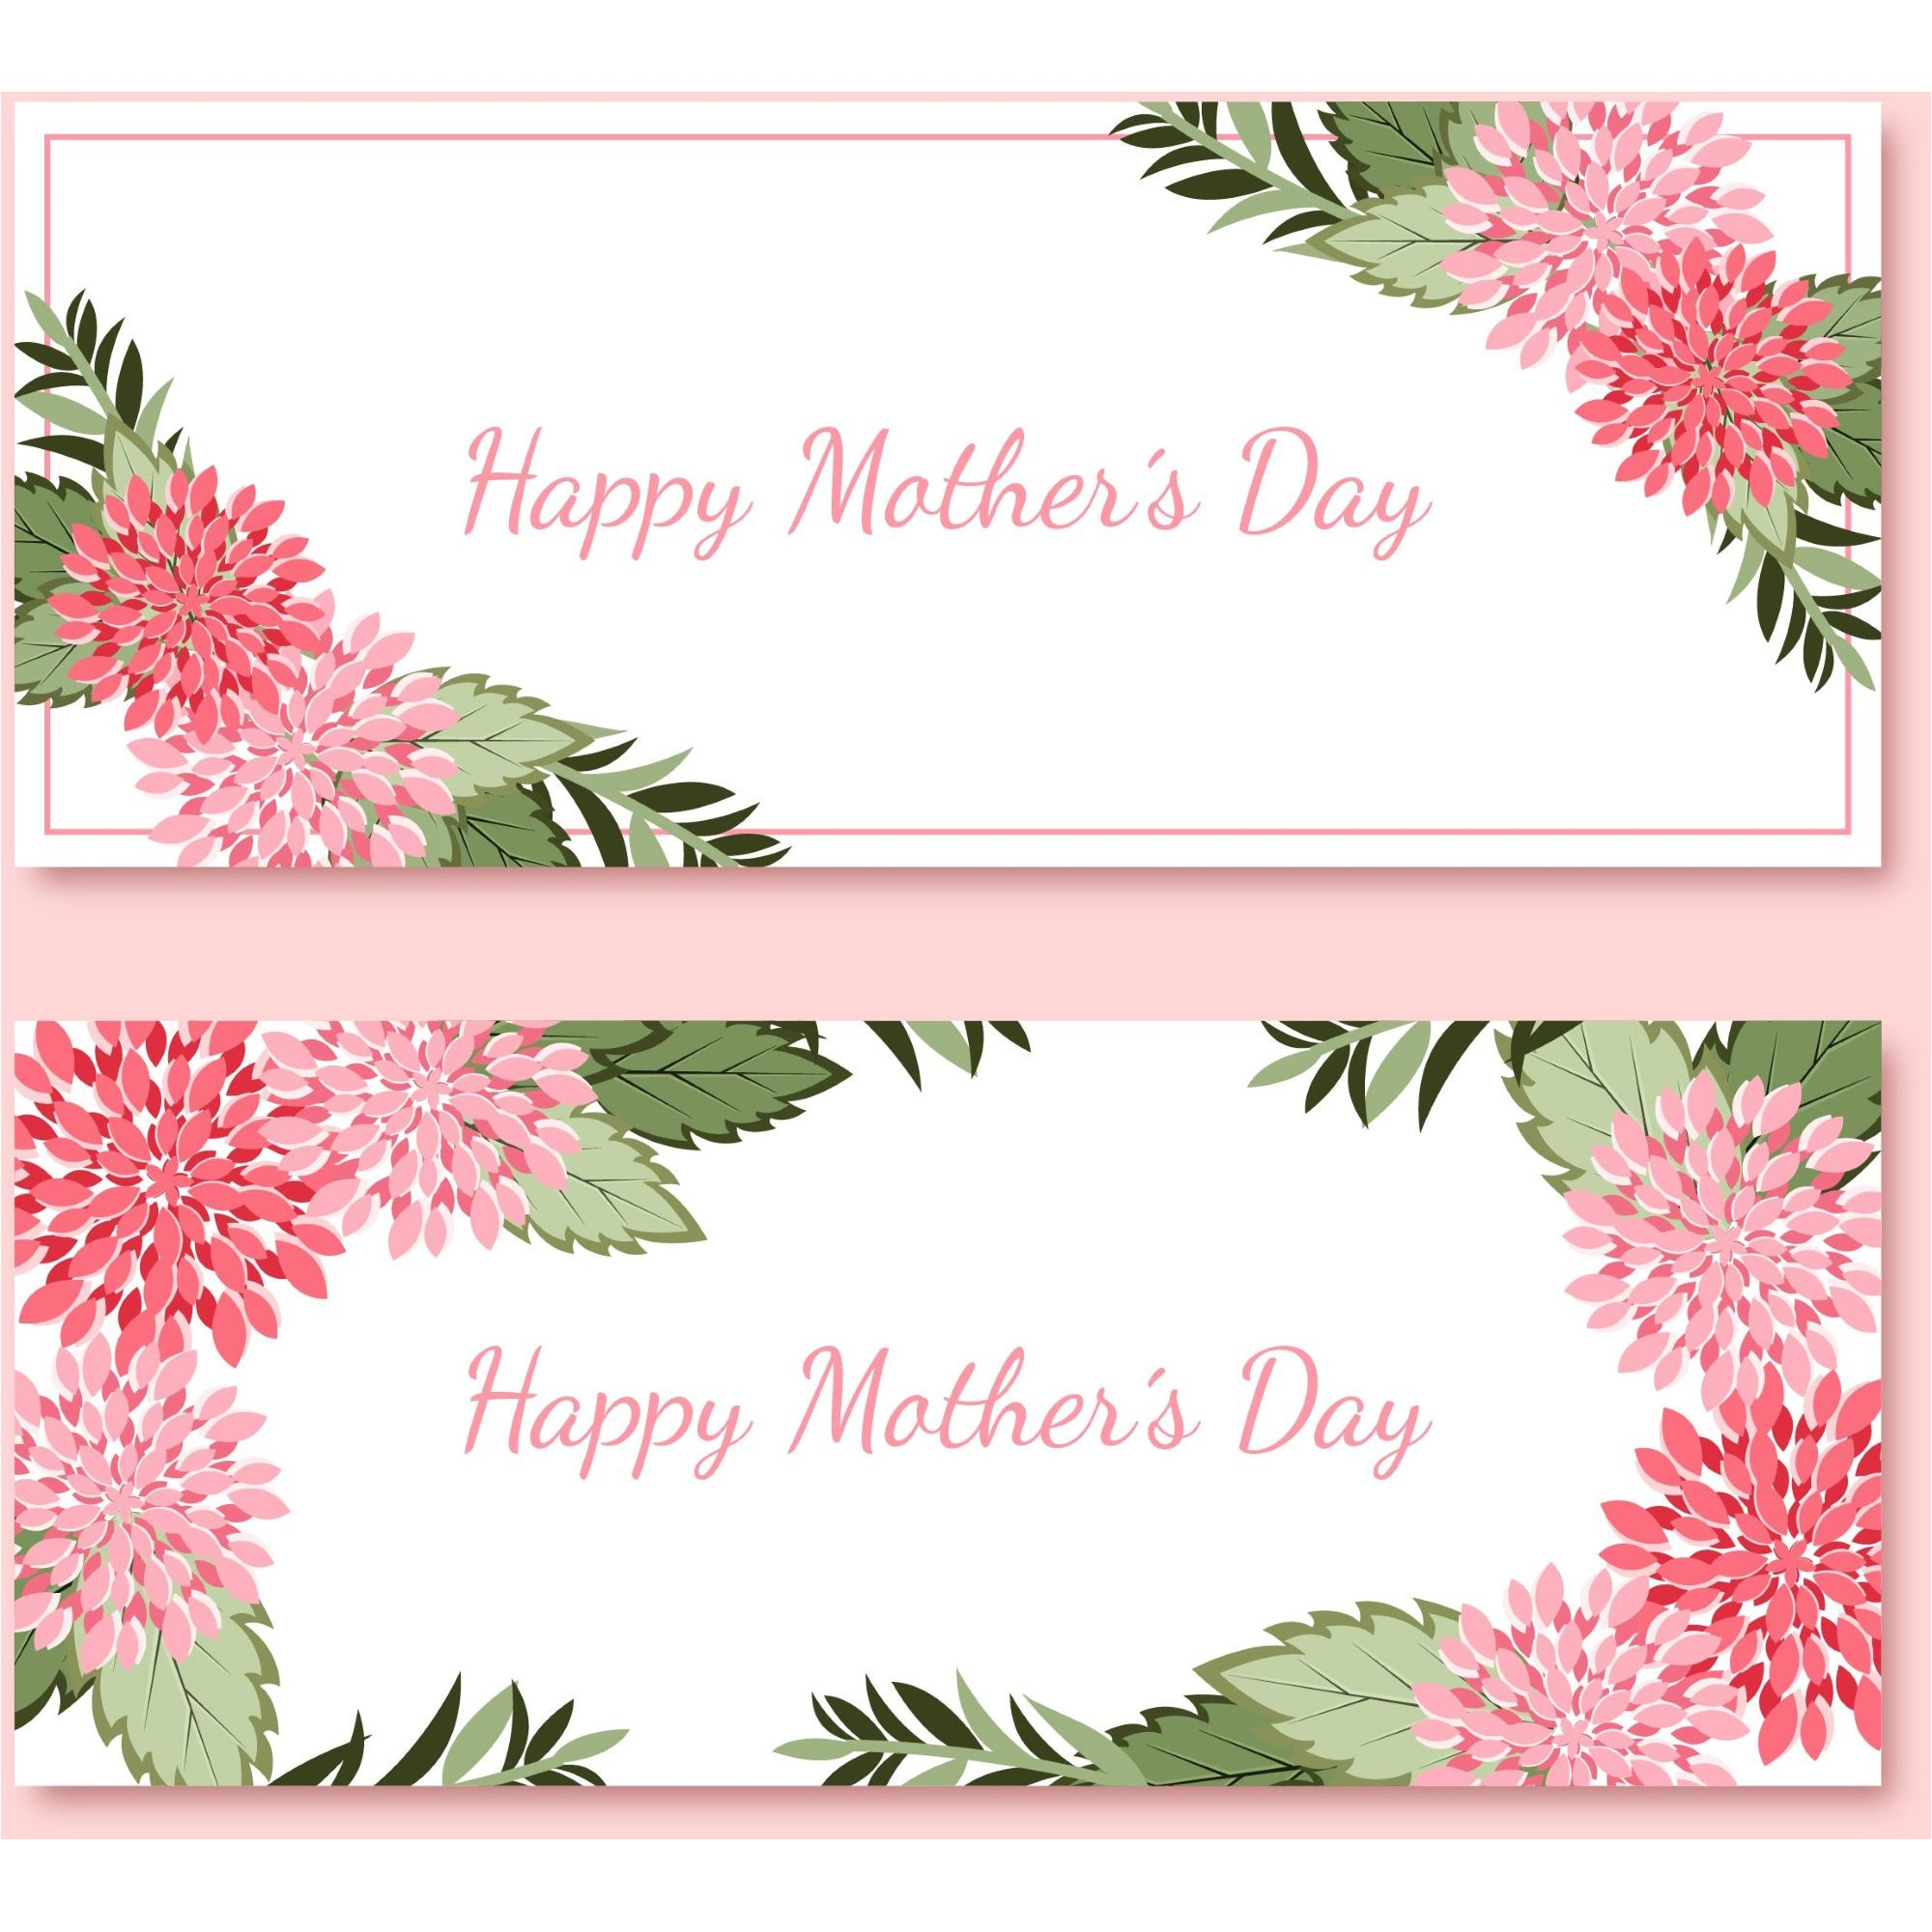 Happy Mothers Day Banners Cards Set Design 2017 Vector 500 Best